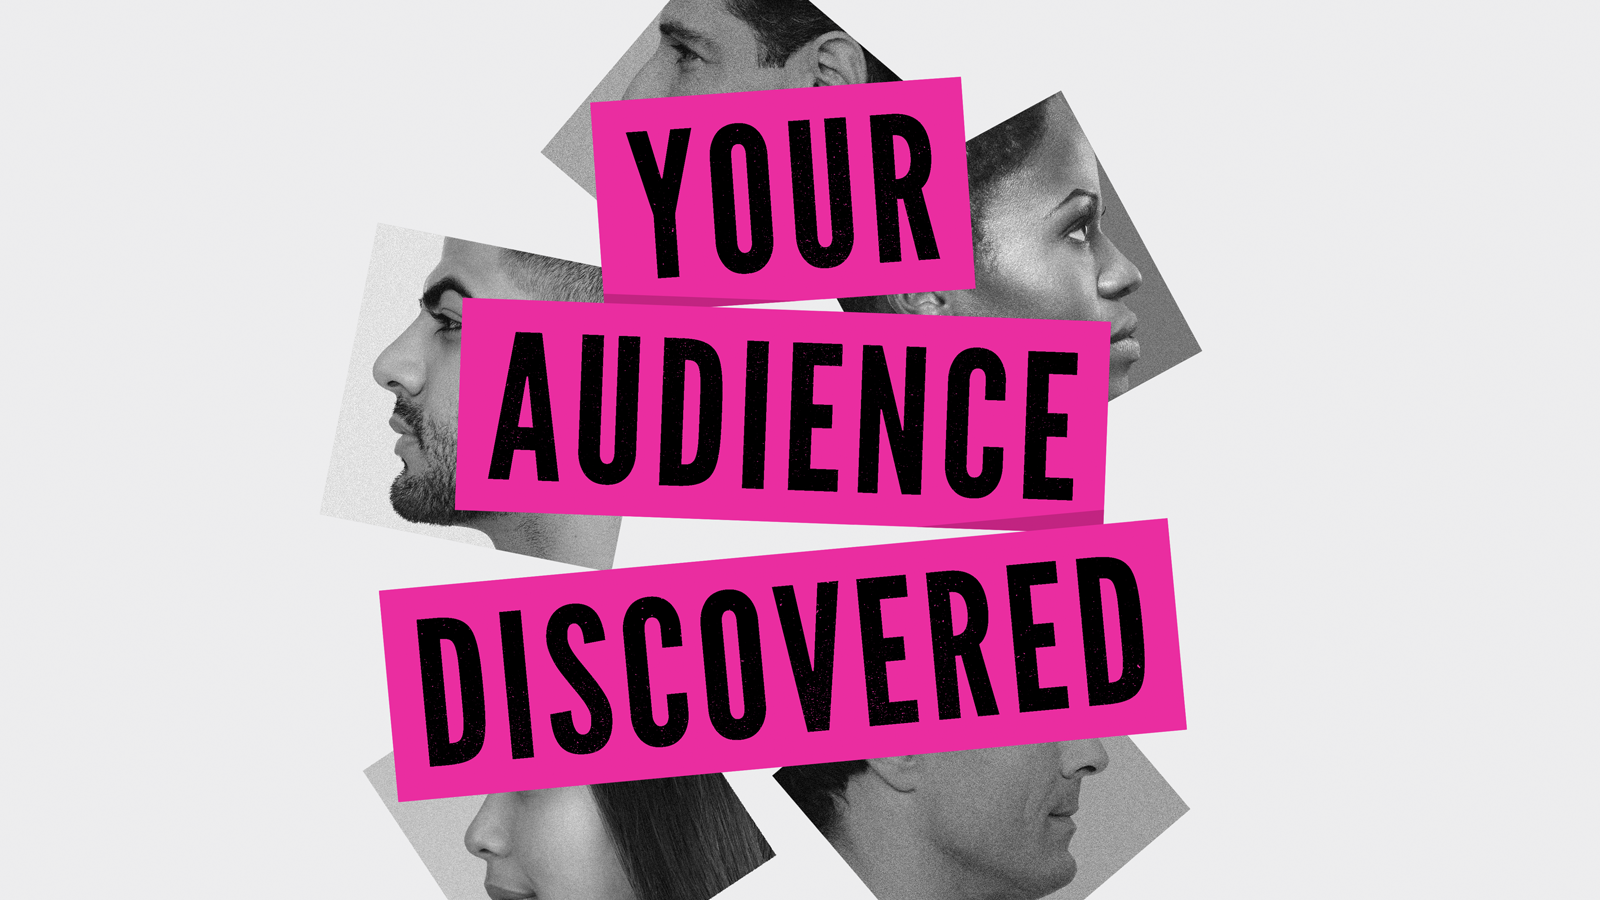 you-audience-discovered-article-header-image